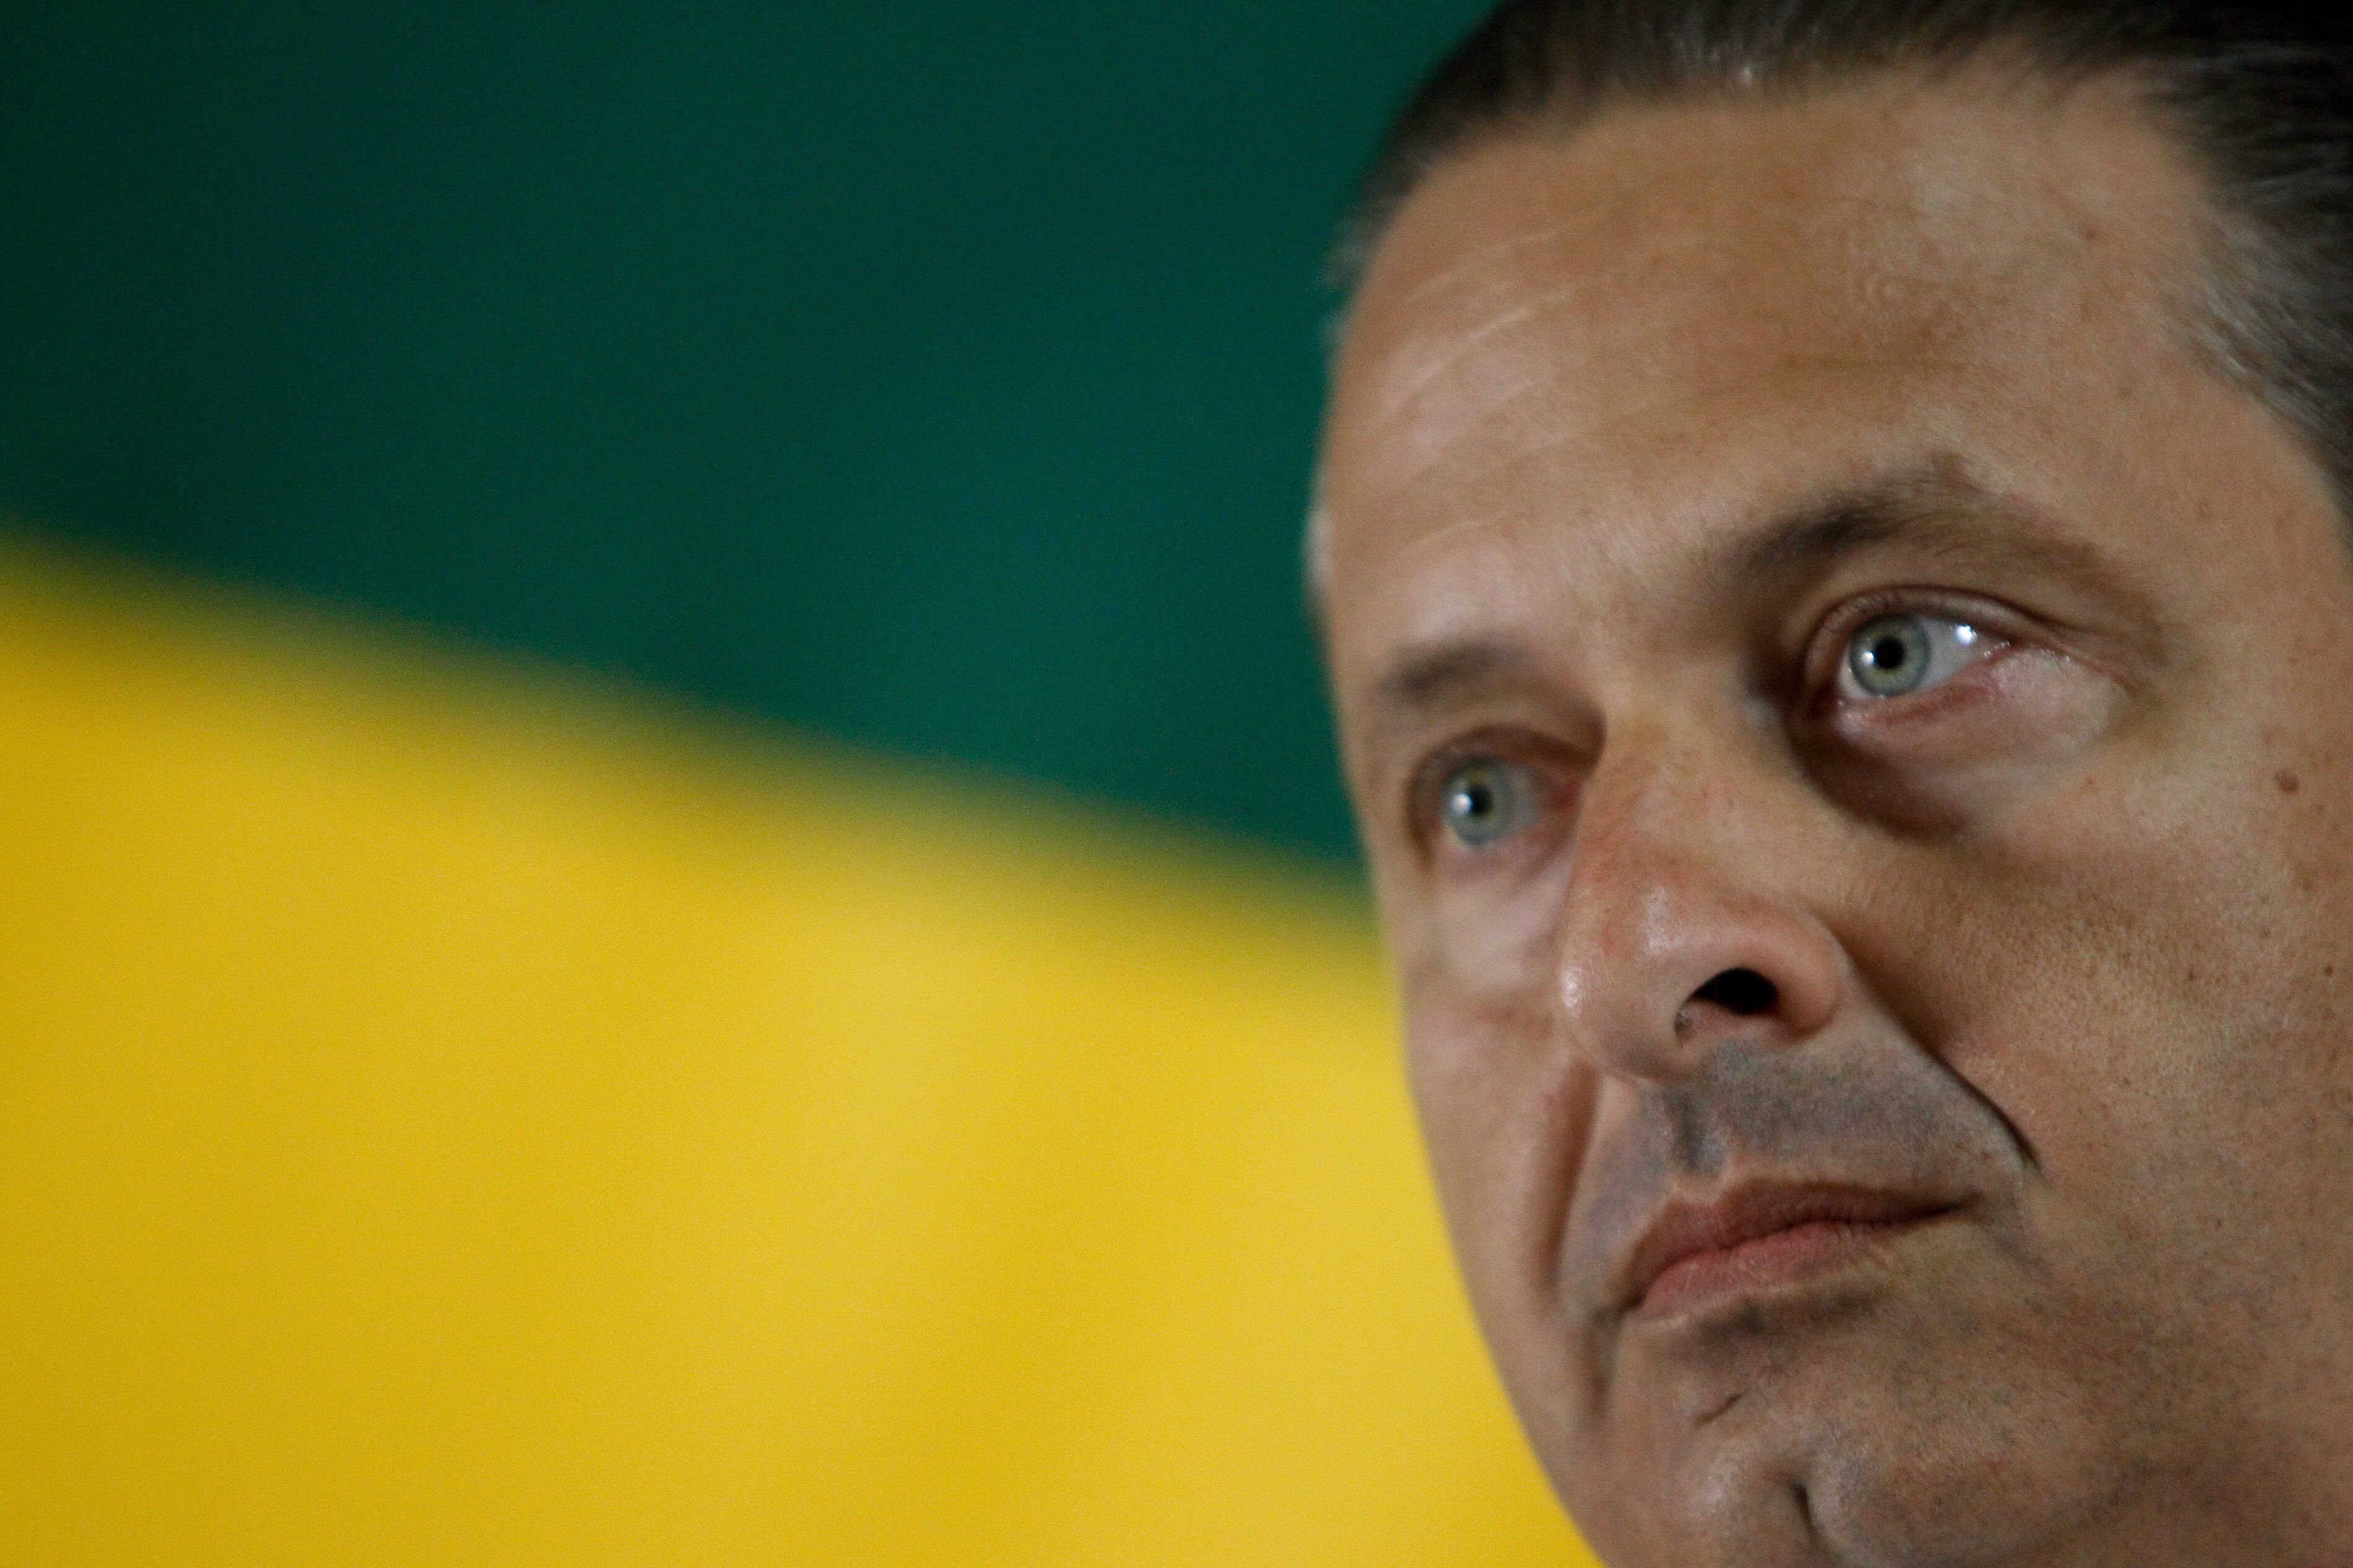 Eduardo Campos, presidential candidate of the Brazilian Socialist Party, during an event in Brasília  on Oct. 5, 2013